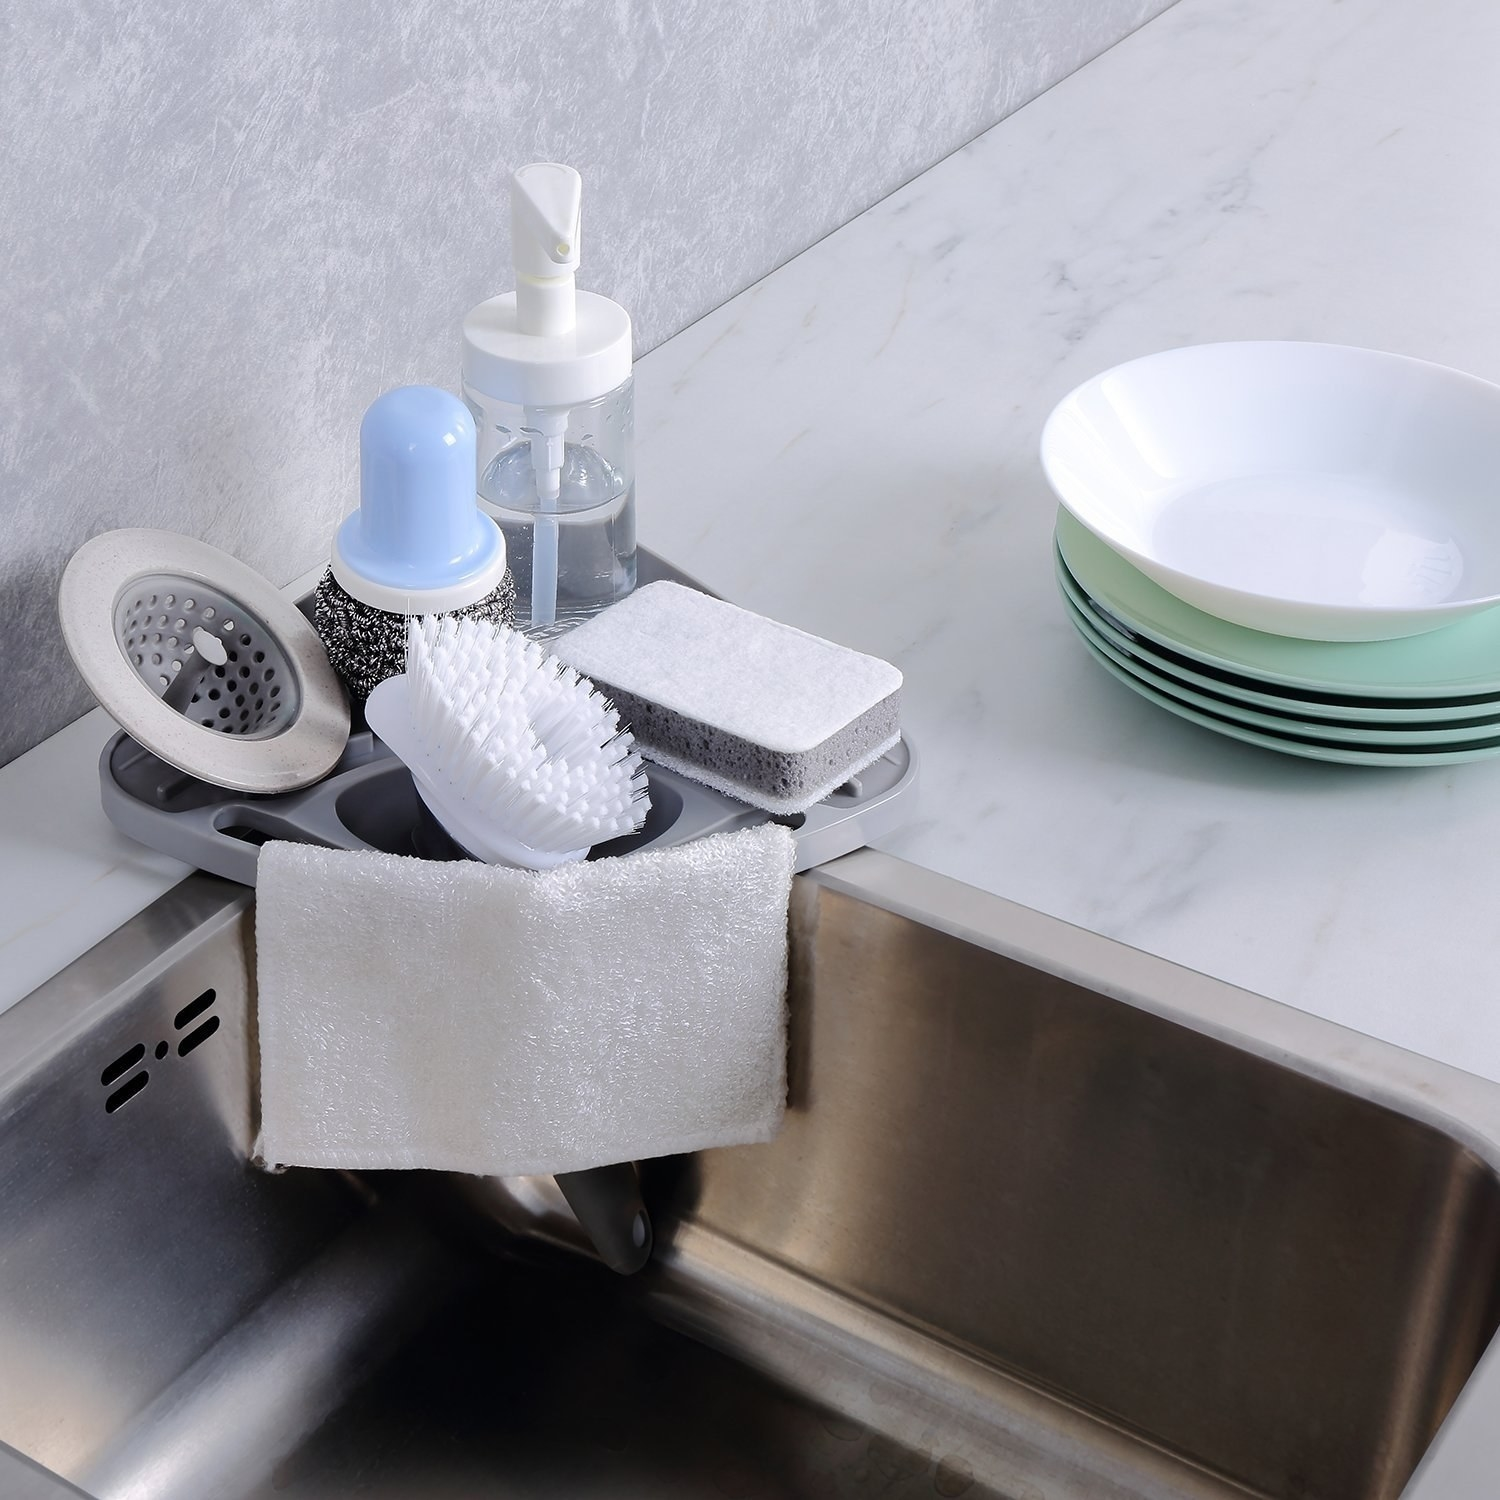 A corner caddy that slips into the corner of sink, with part of it able to drain into the sink